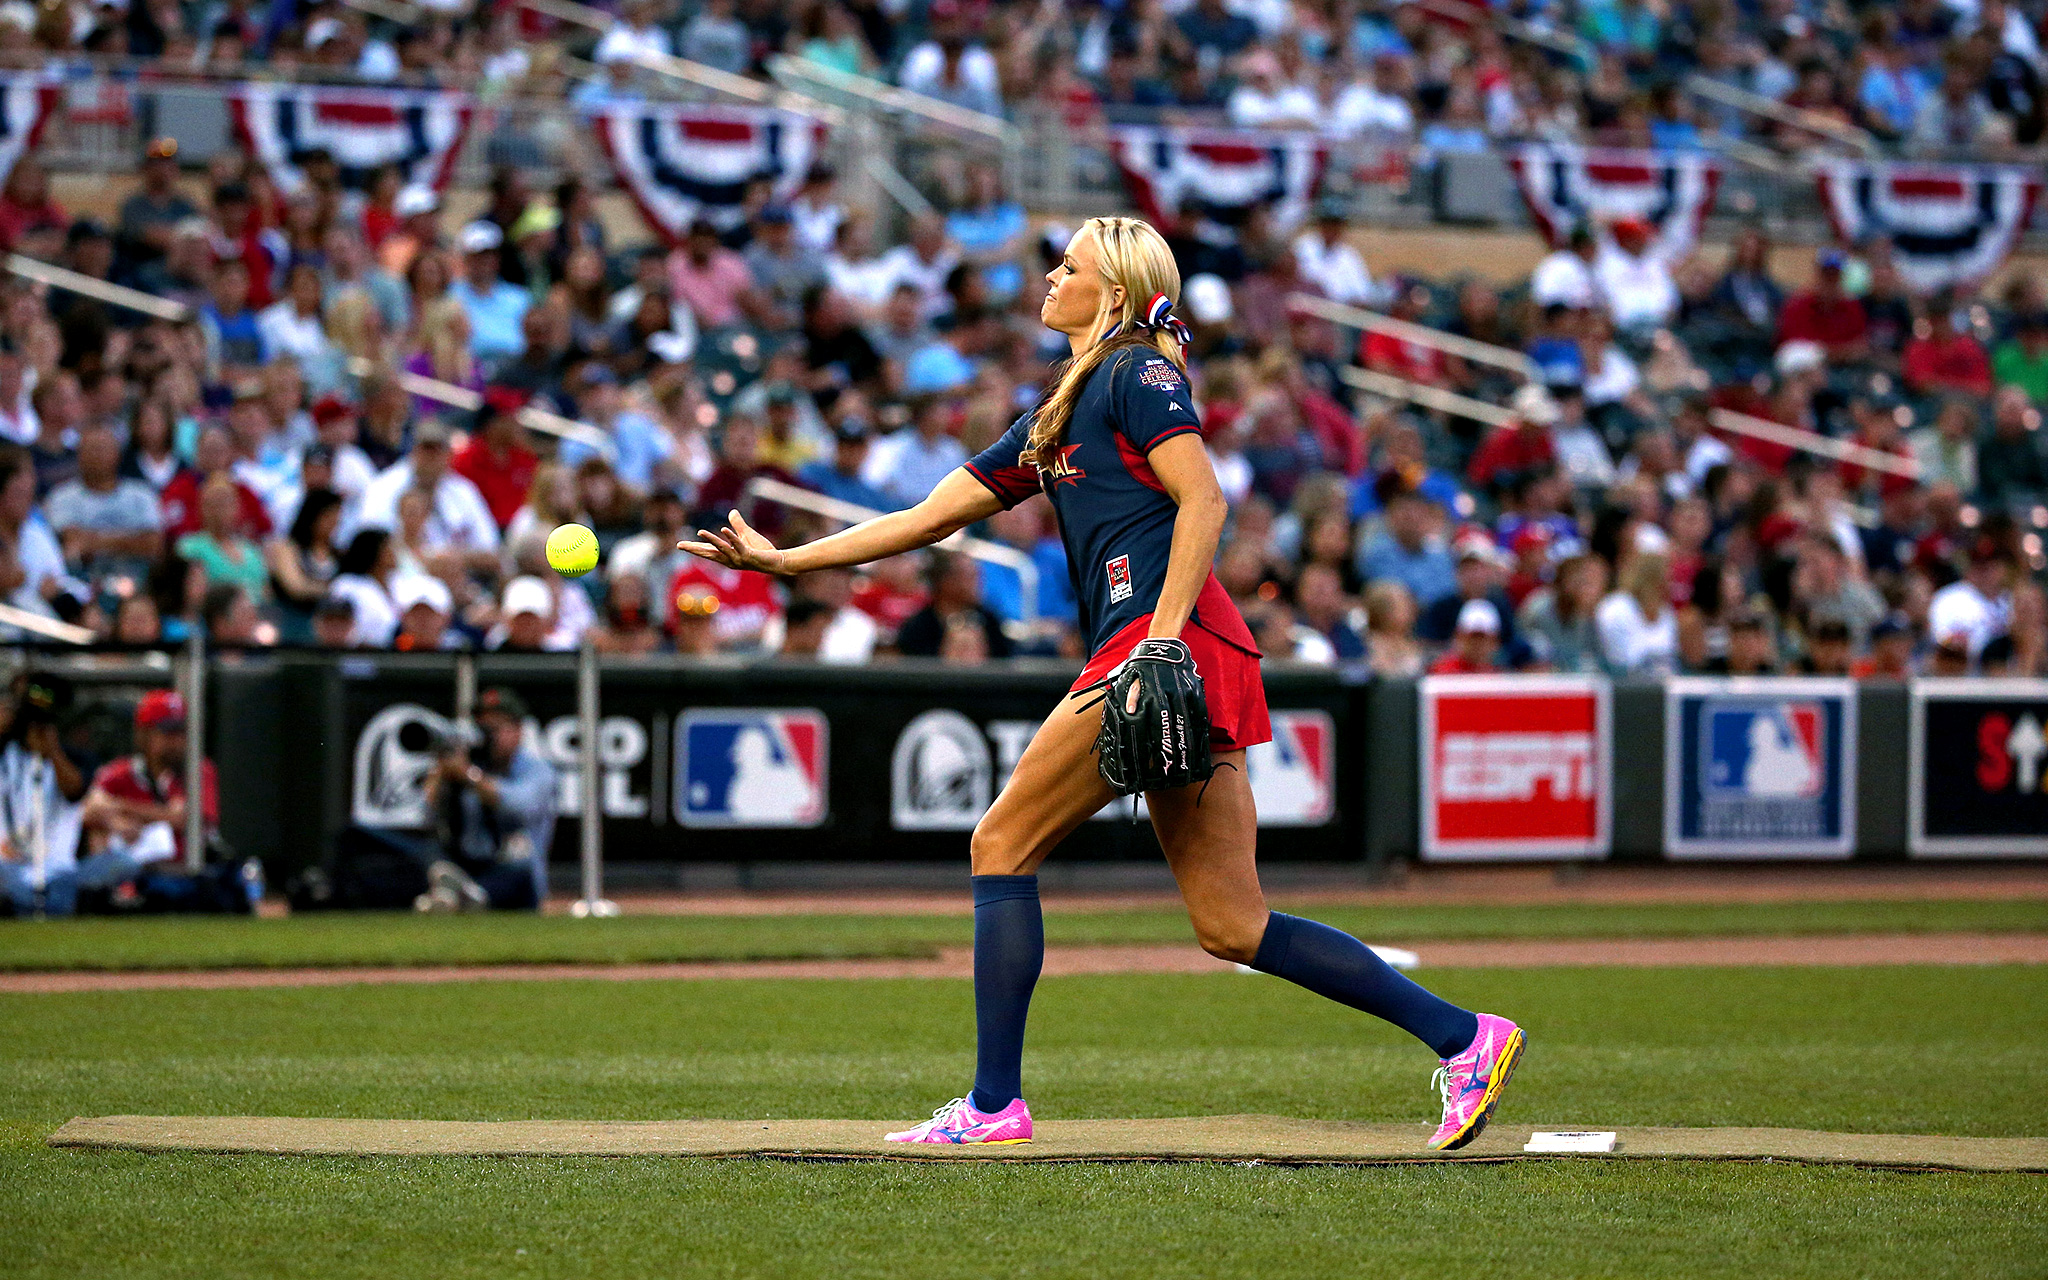 Jennie Finch pitches in the Taco Bell Legends & Celebrity softball game during Major League Baseball All-Star Game festivities at the Target Field in Minneapolis, Minnesota.